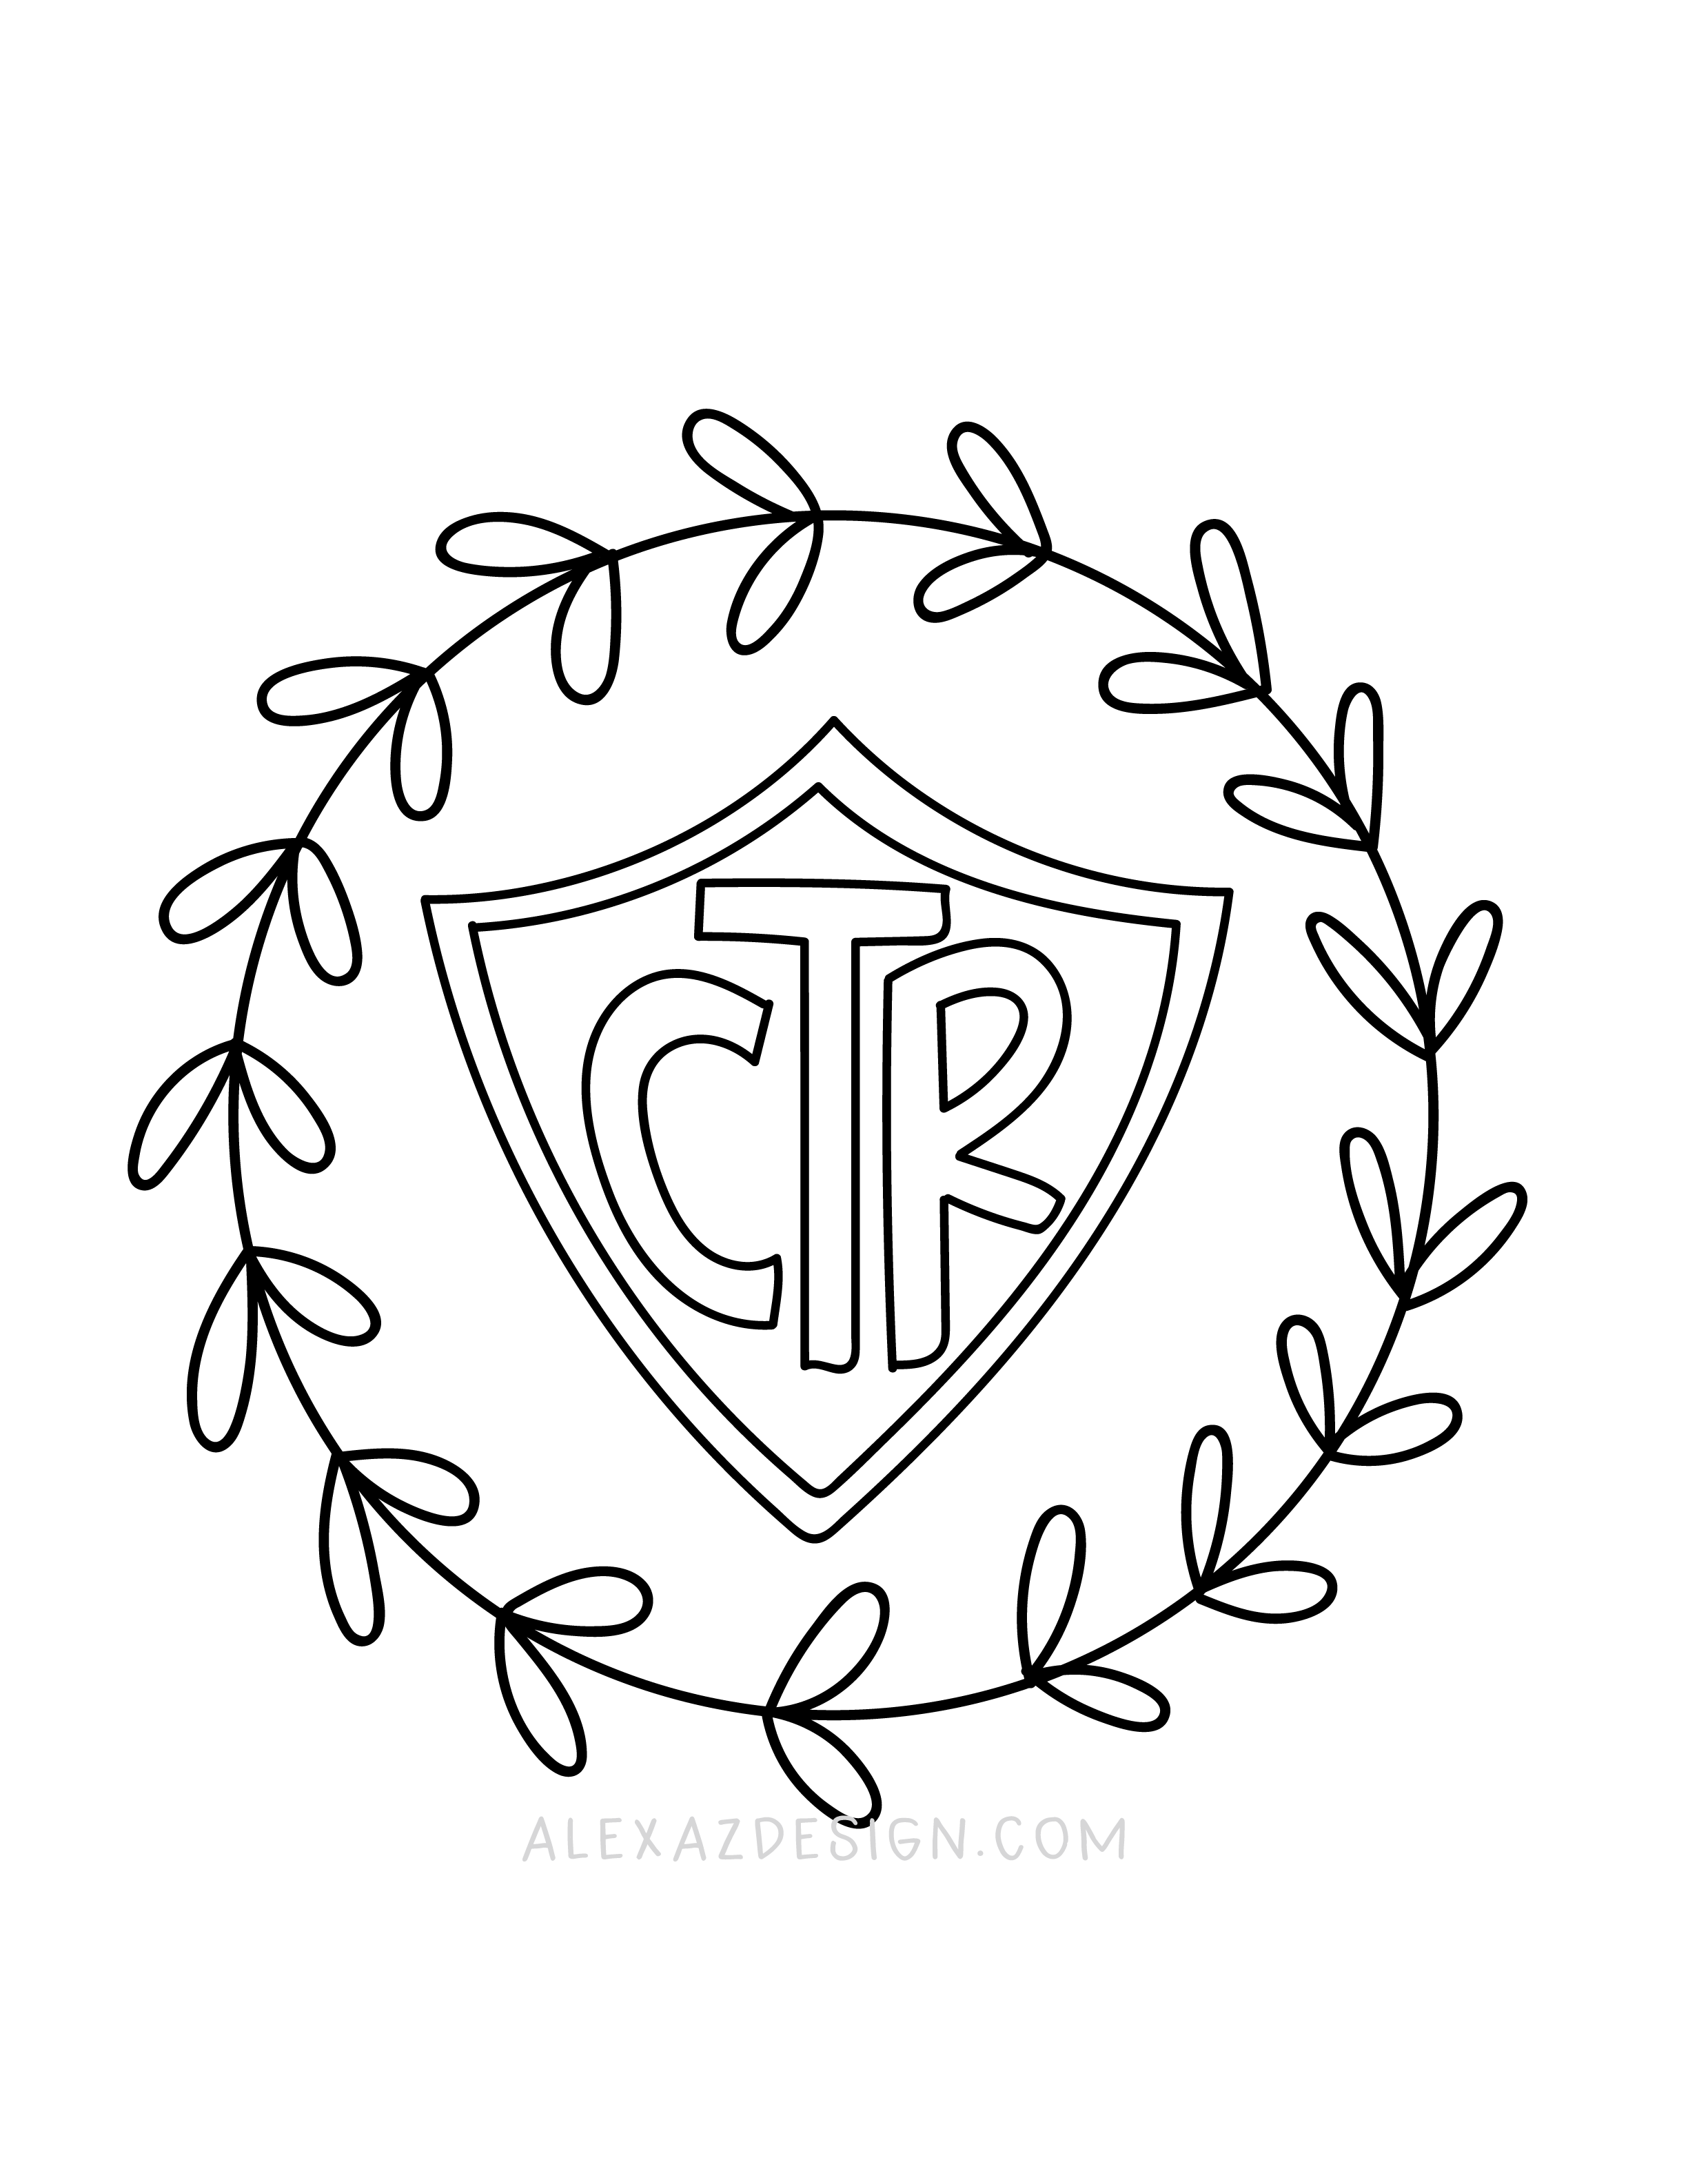 General Conference Coloring Page Printables Coloring Pages Jesus Coloring Pages Lds Coloring Pages